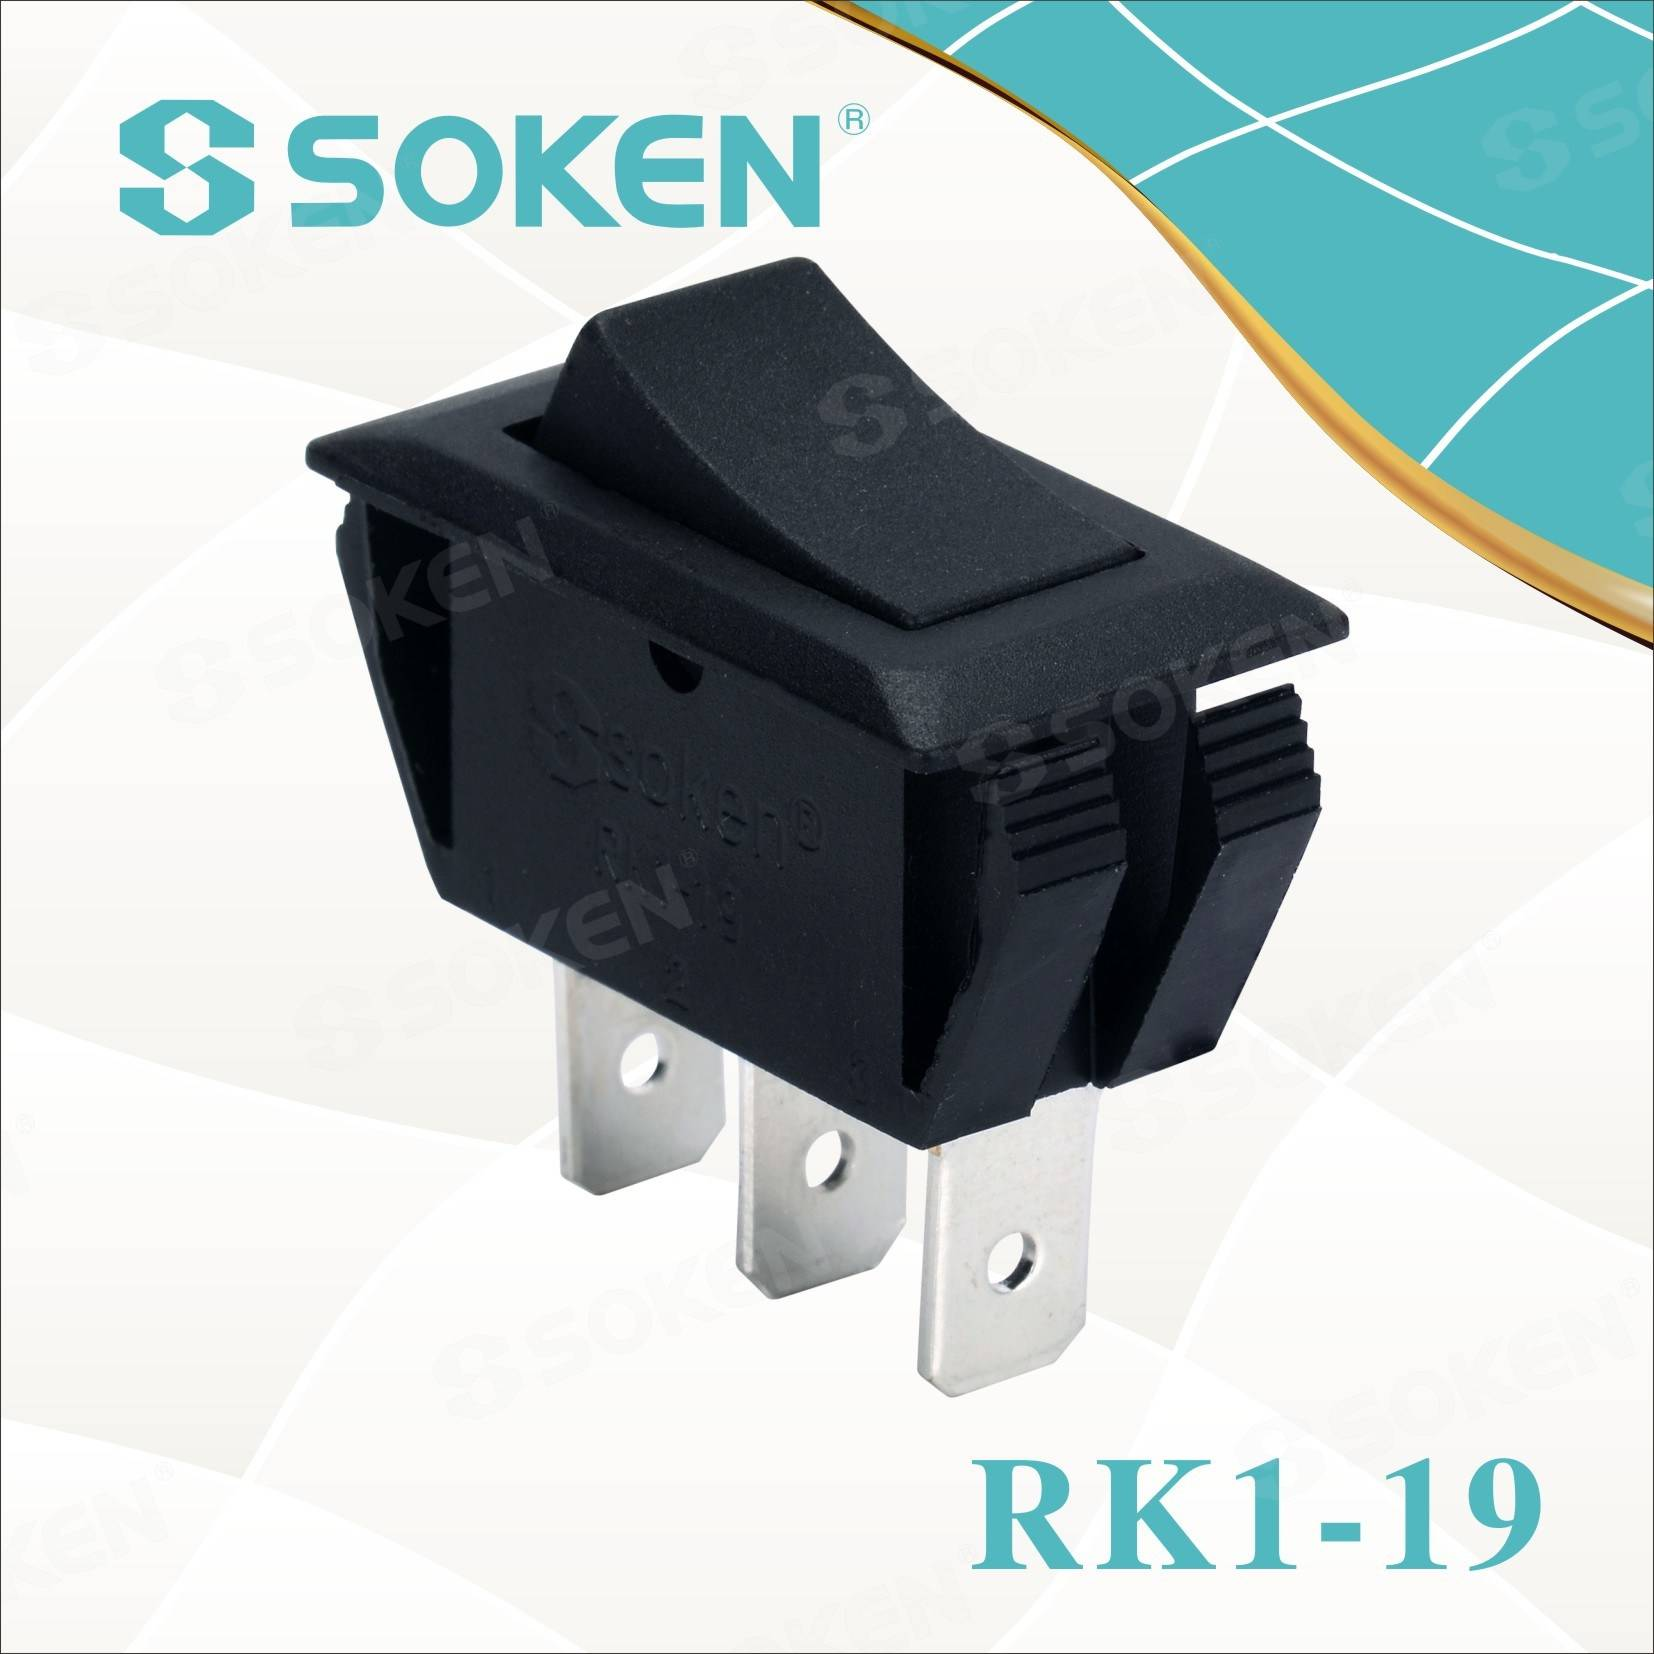 Soken Rk1-19 1X2 on on Rocker Switch